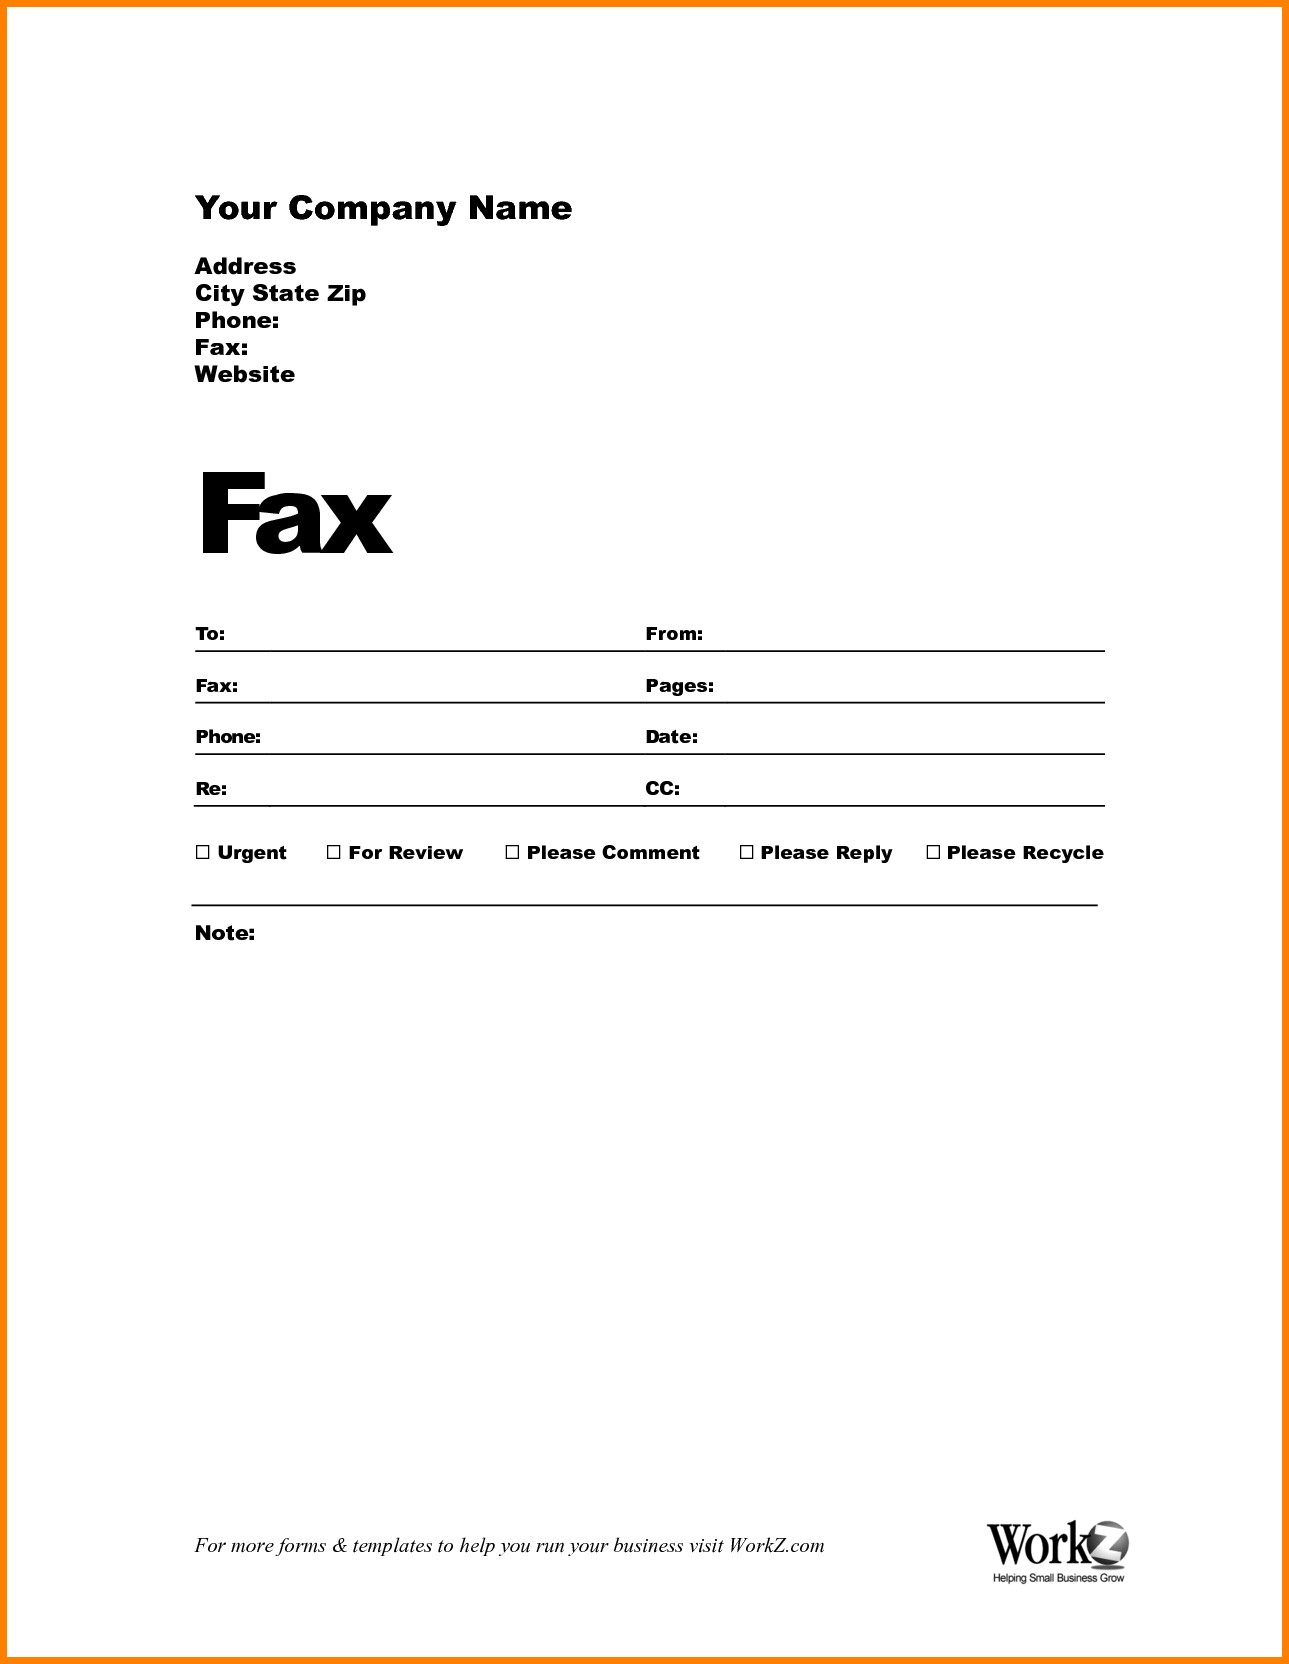 Fax Cover Sheet Template Word Confidential Fax Cover Sheet Free Word - Free Printable Fax Cover Sheet Pdf